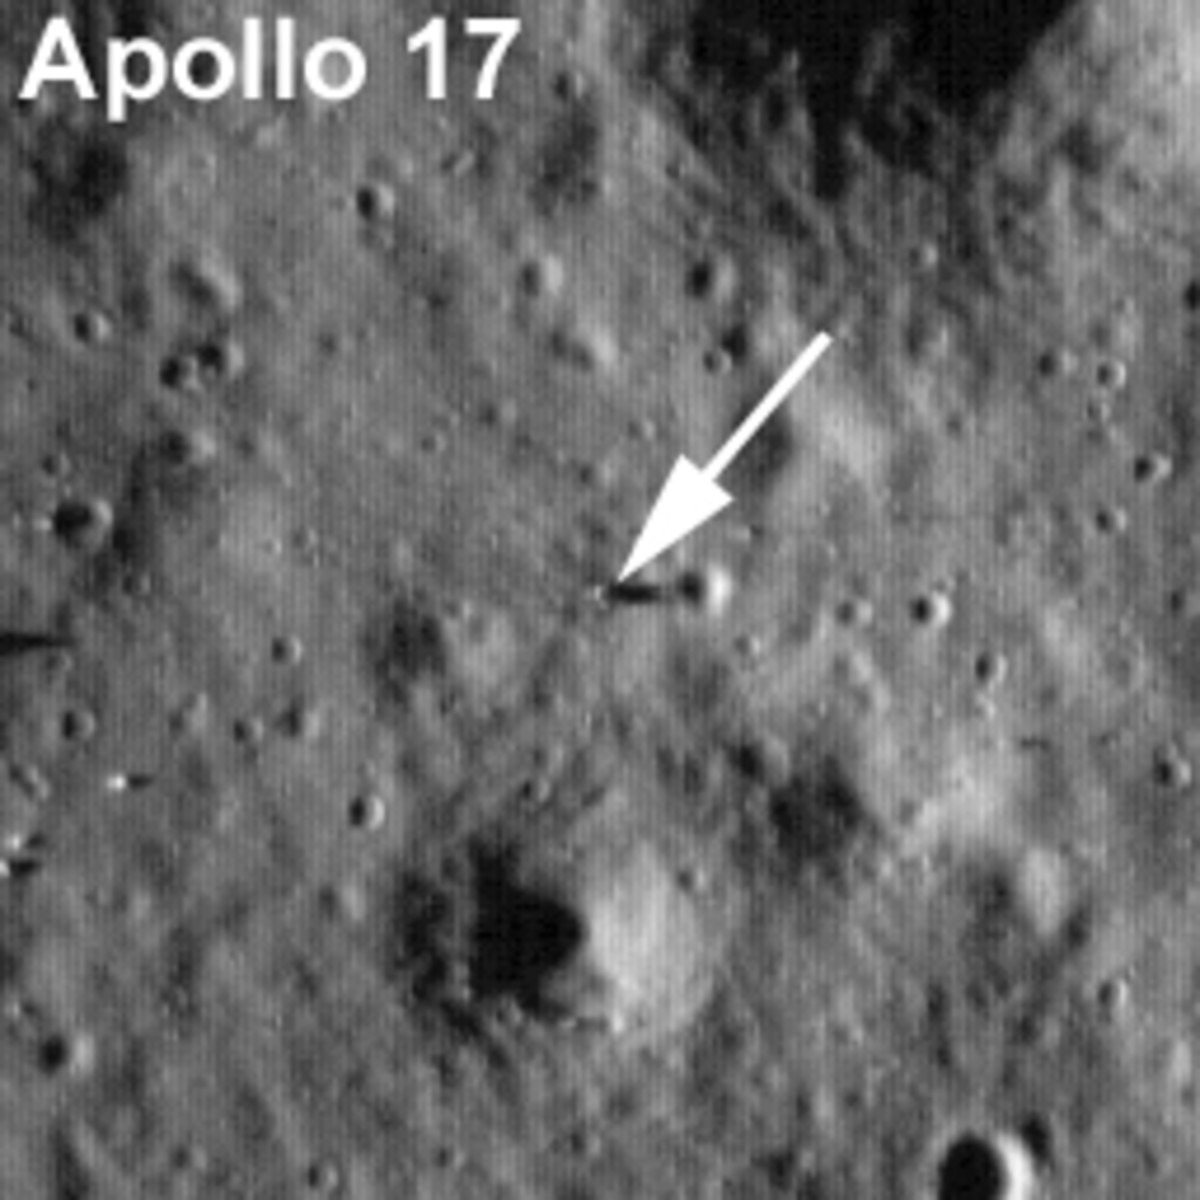 July 2009 - First photo of Apollo 17 landing site, zoomed in.